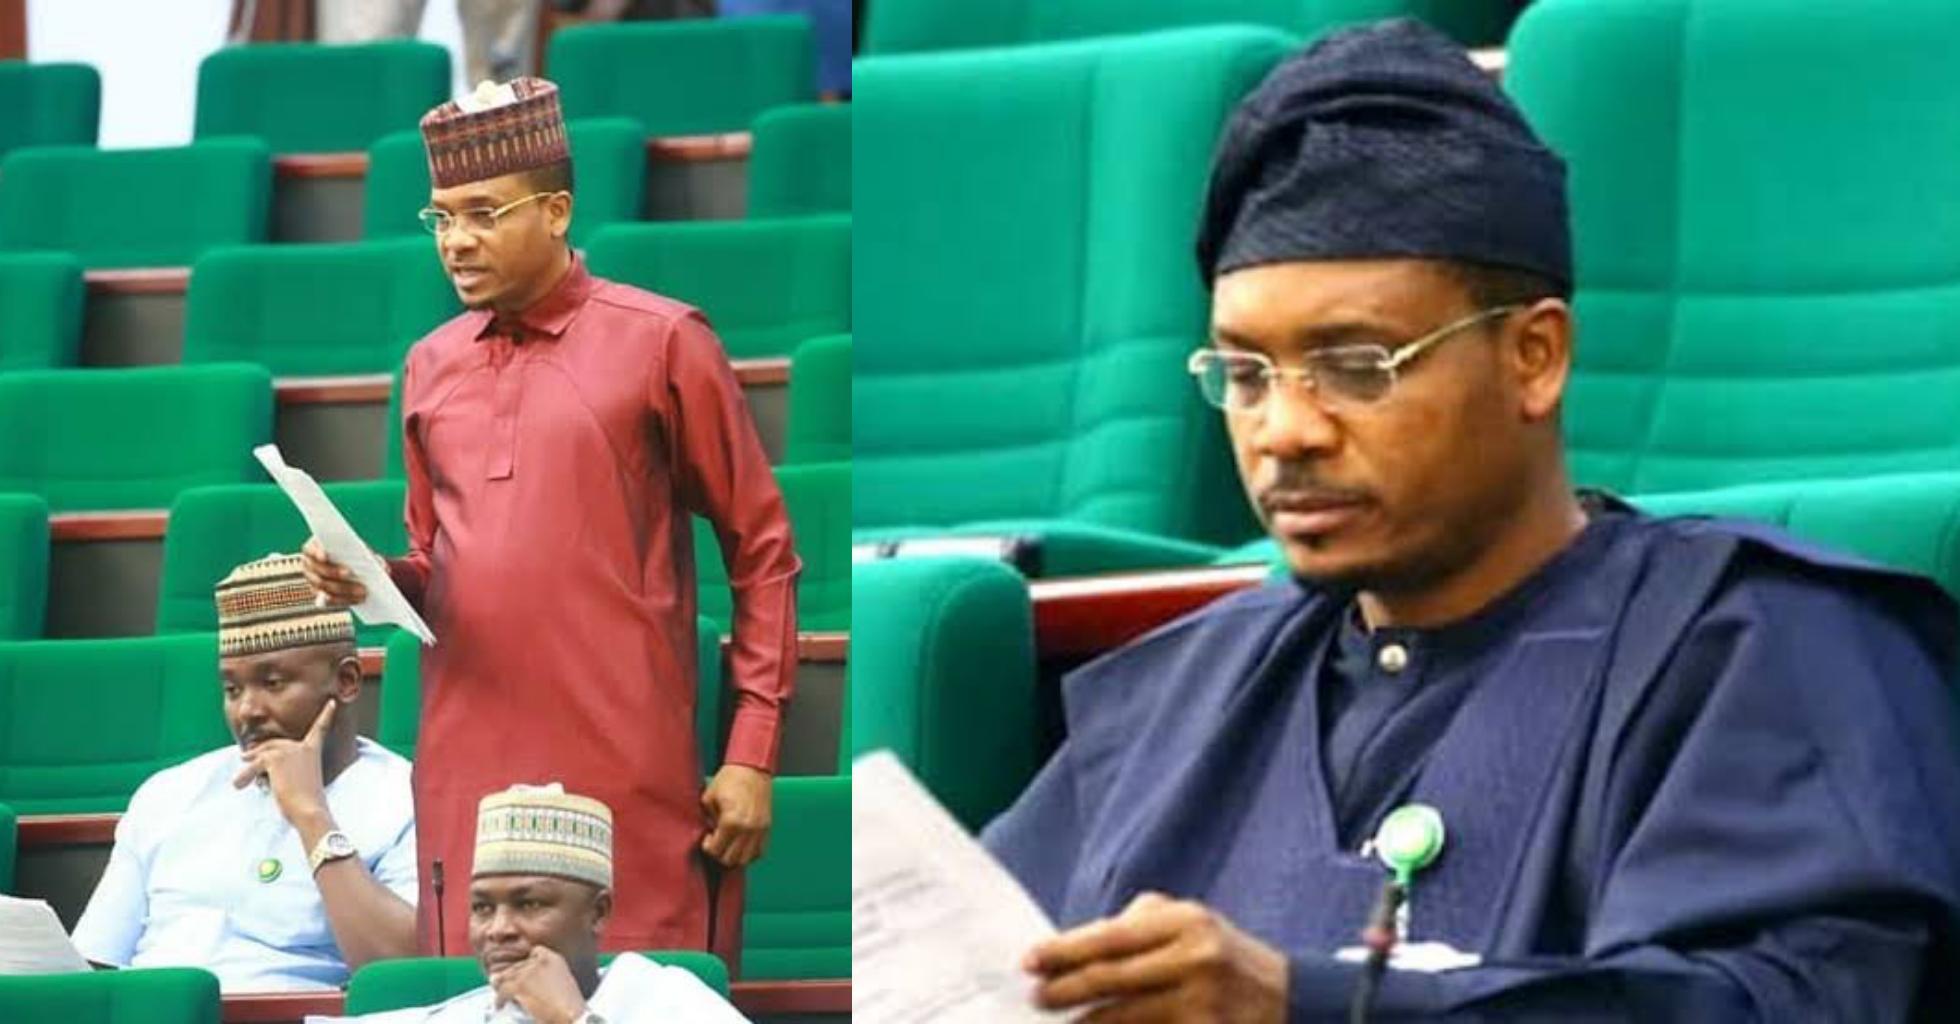 Shina Peller: We Are Not Well-informed As Nigerian Leaders